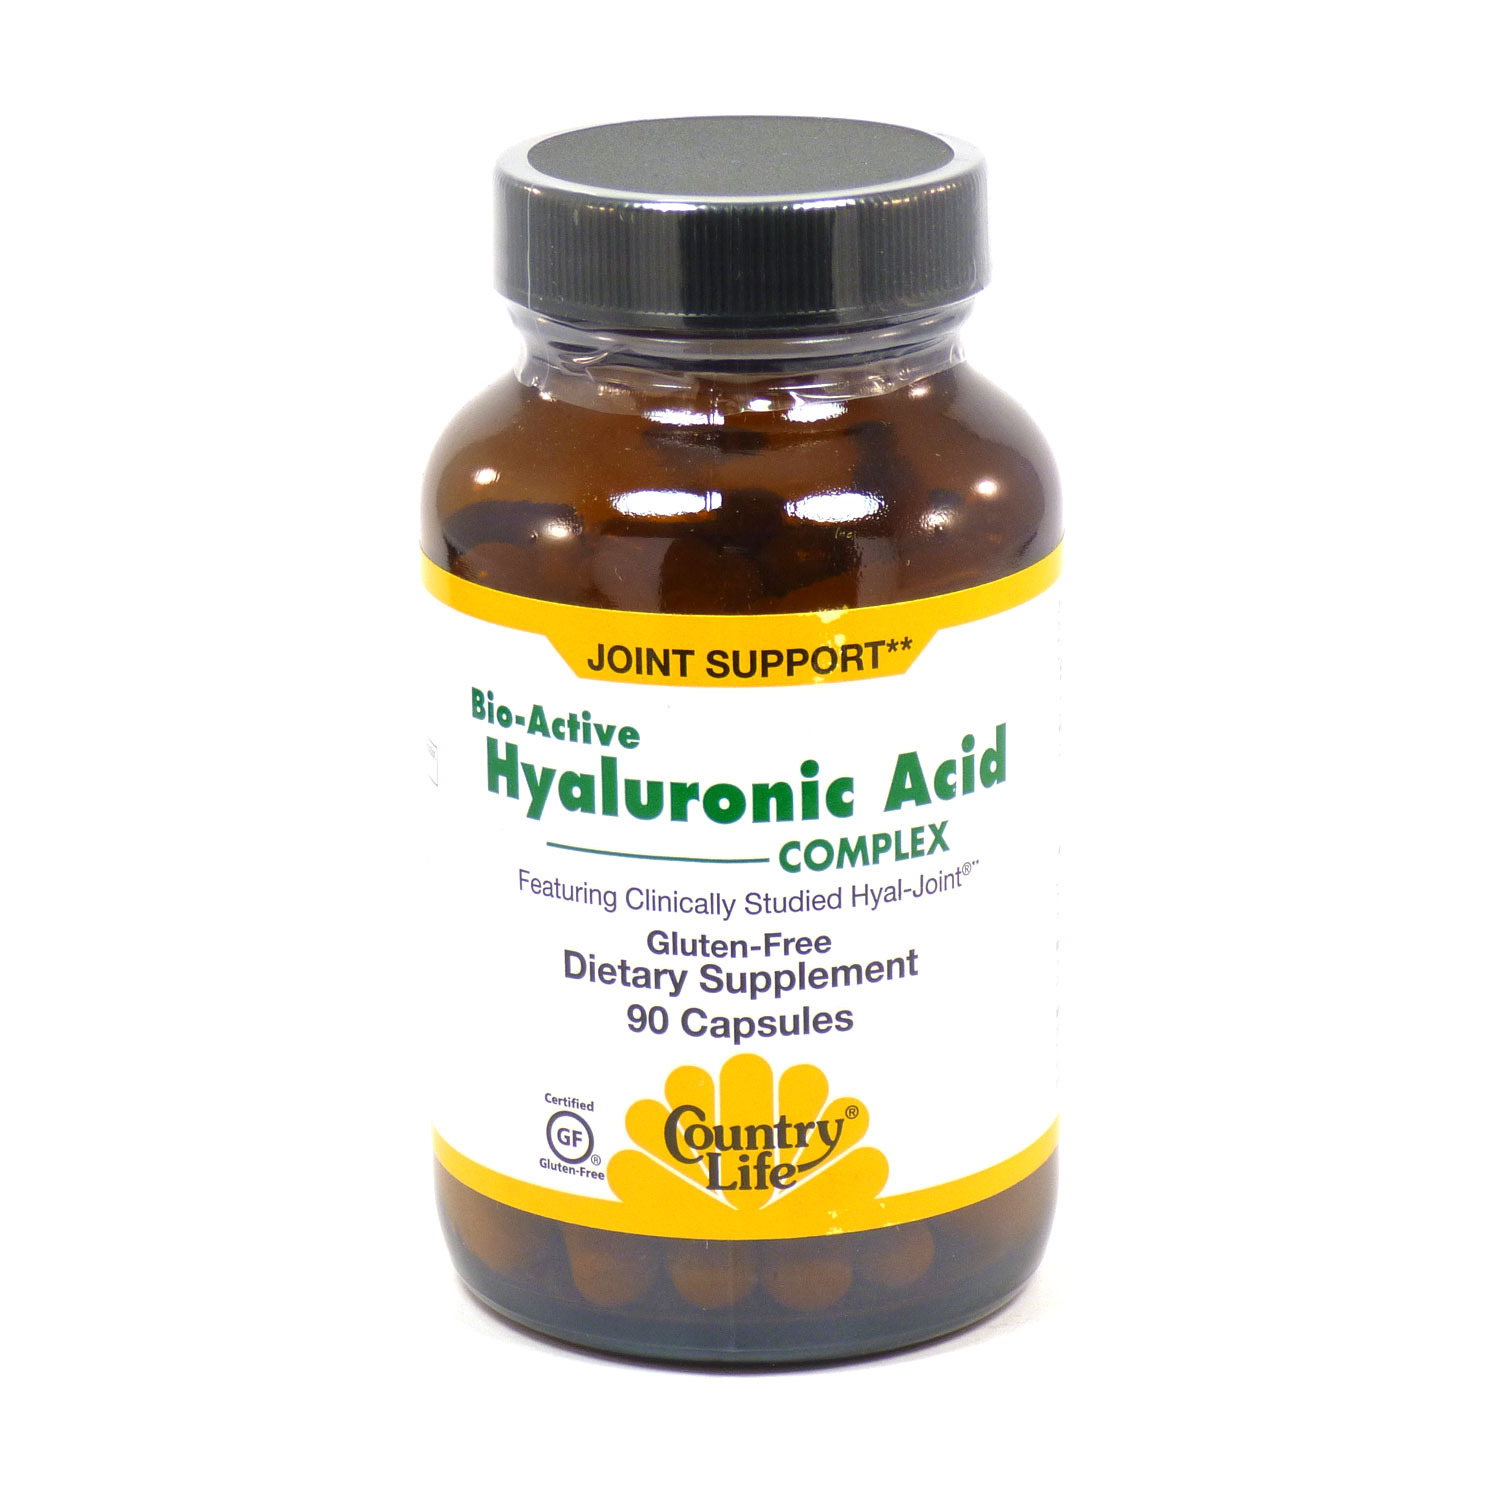 Country Life Hyaluronic Acid Complex, 90 Ct